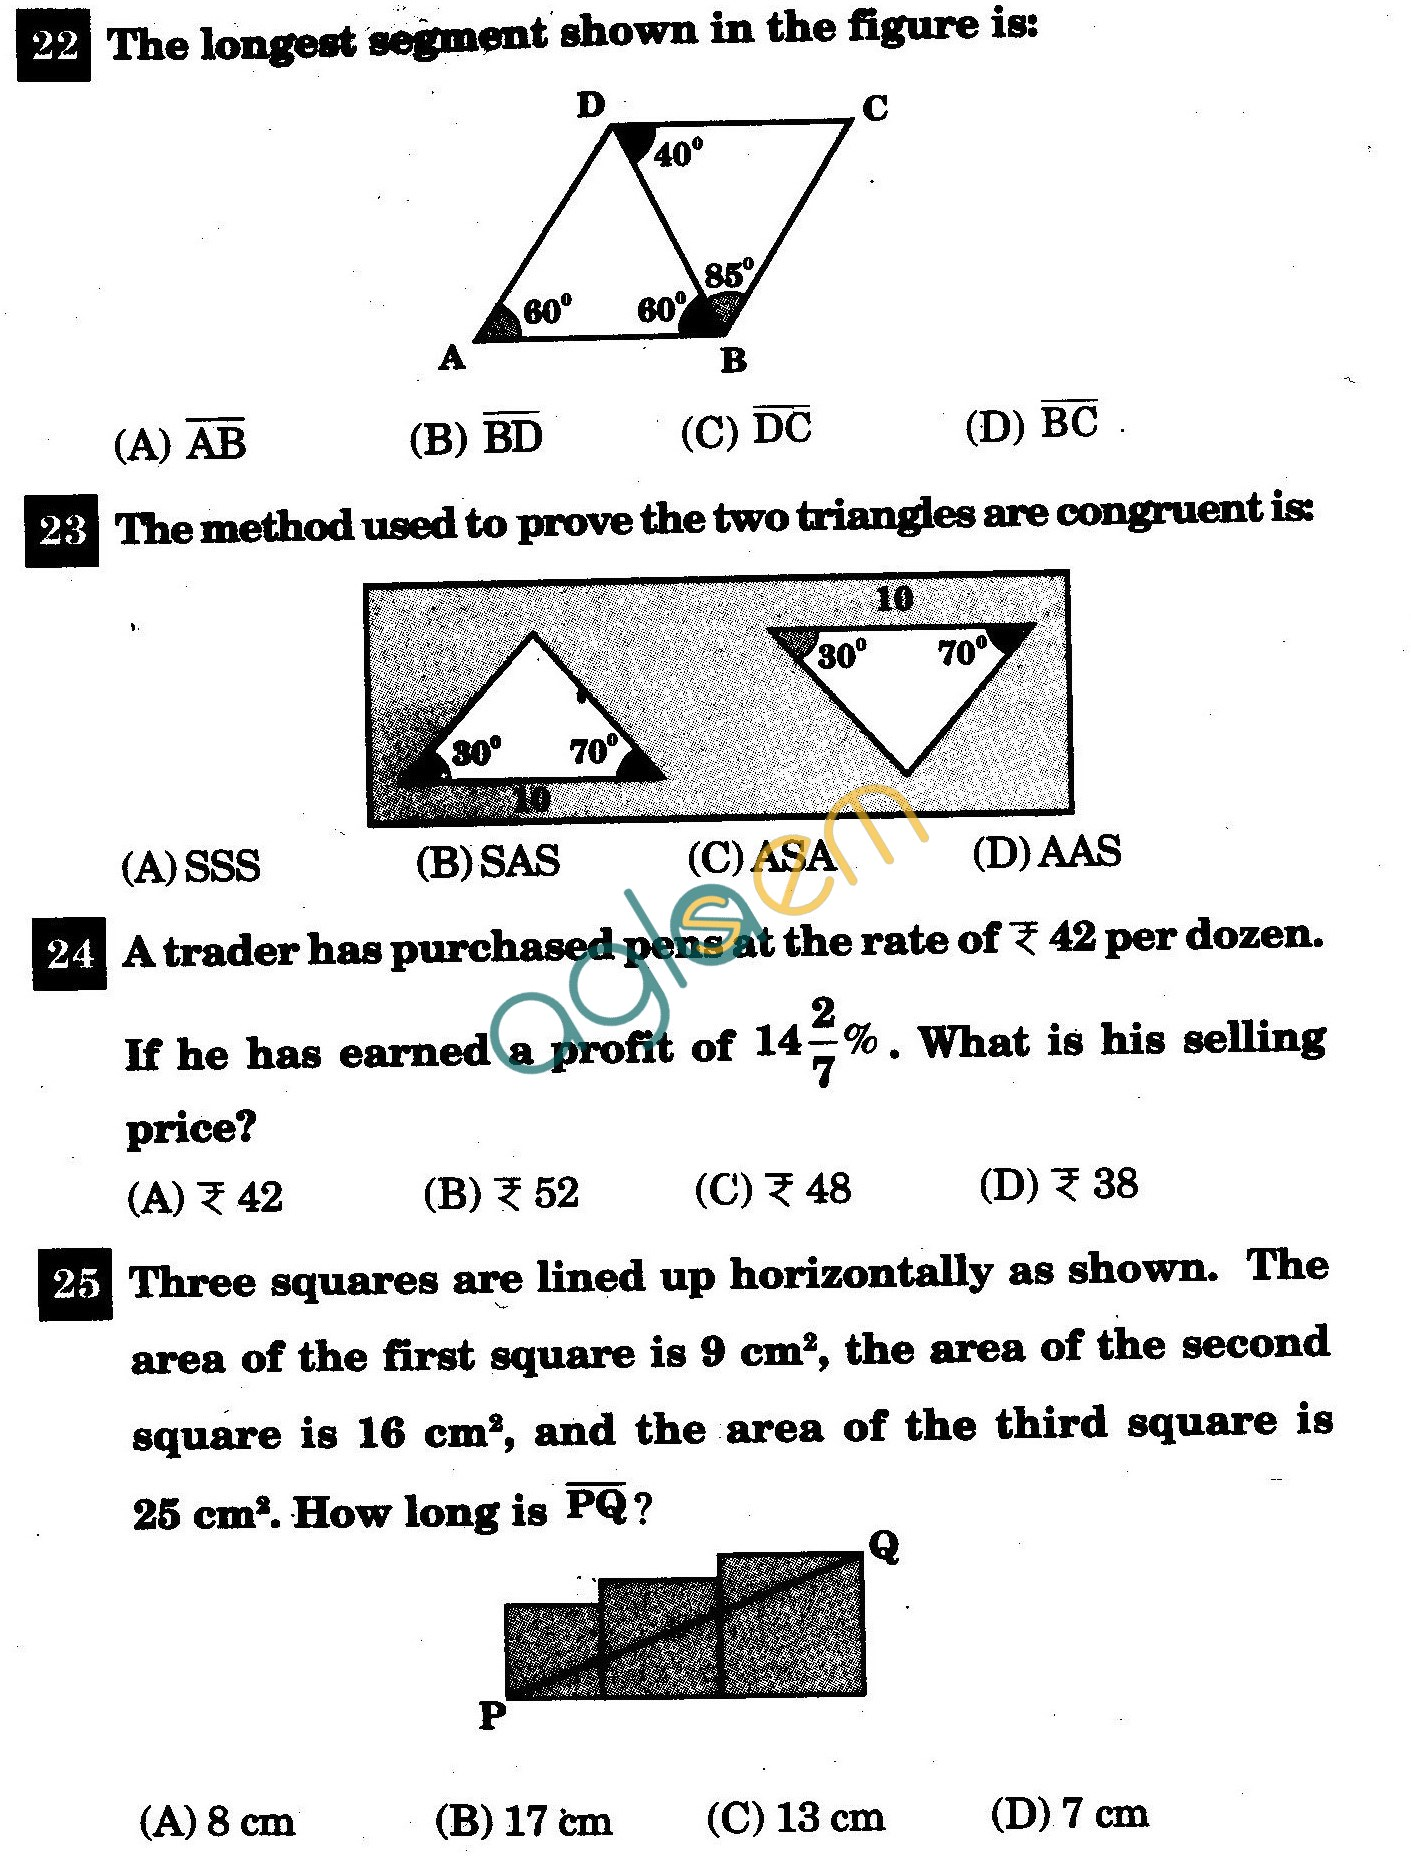 NSTSE 2011 Class VII Question Paper with Answers - Mathematics